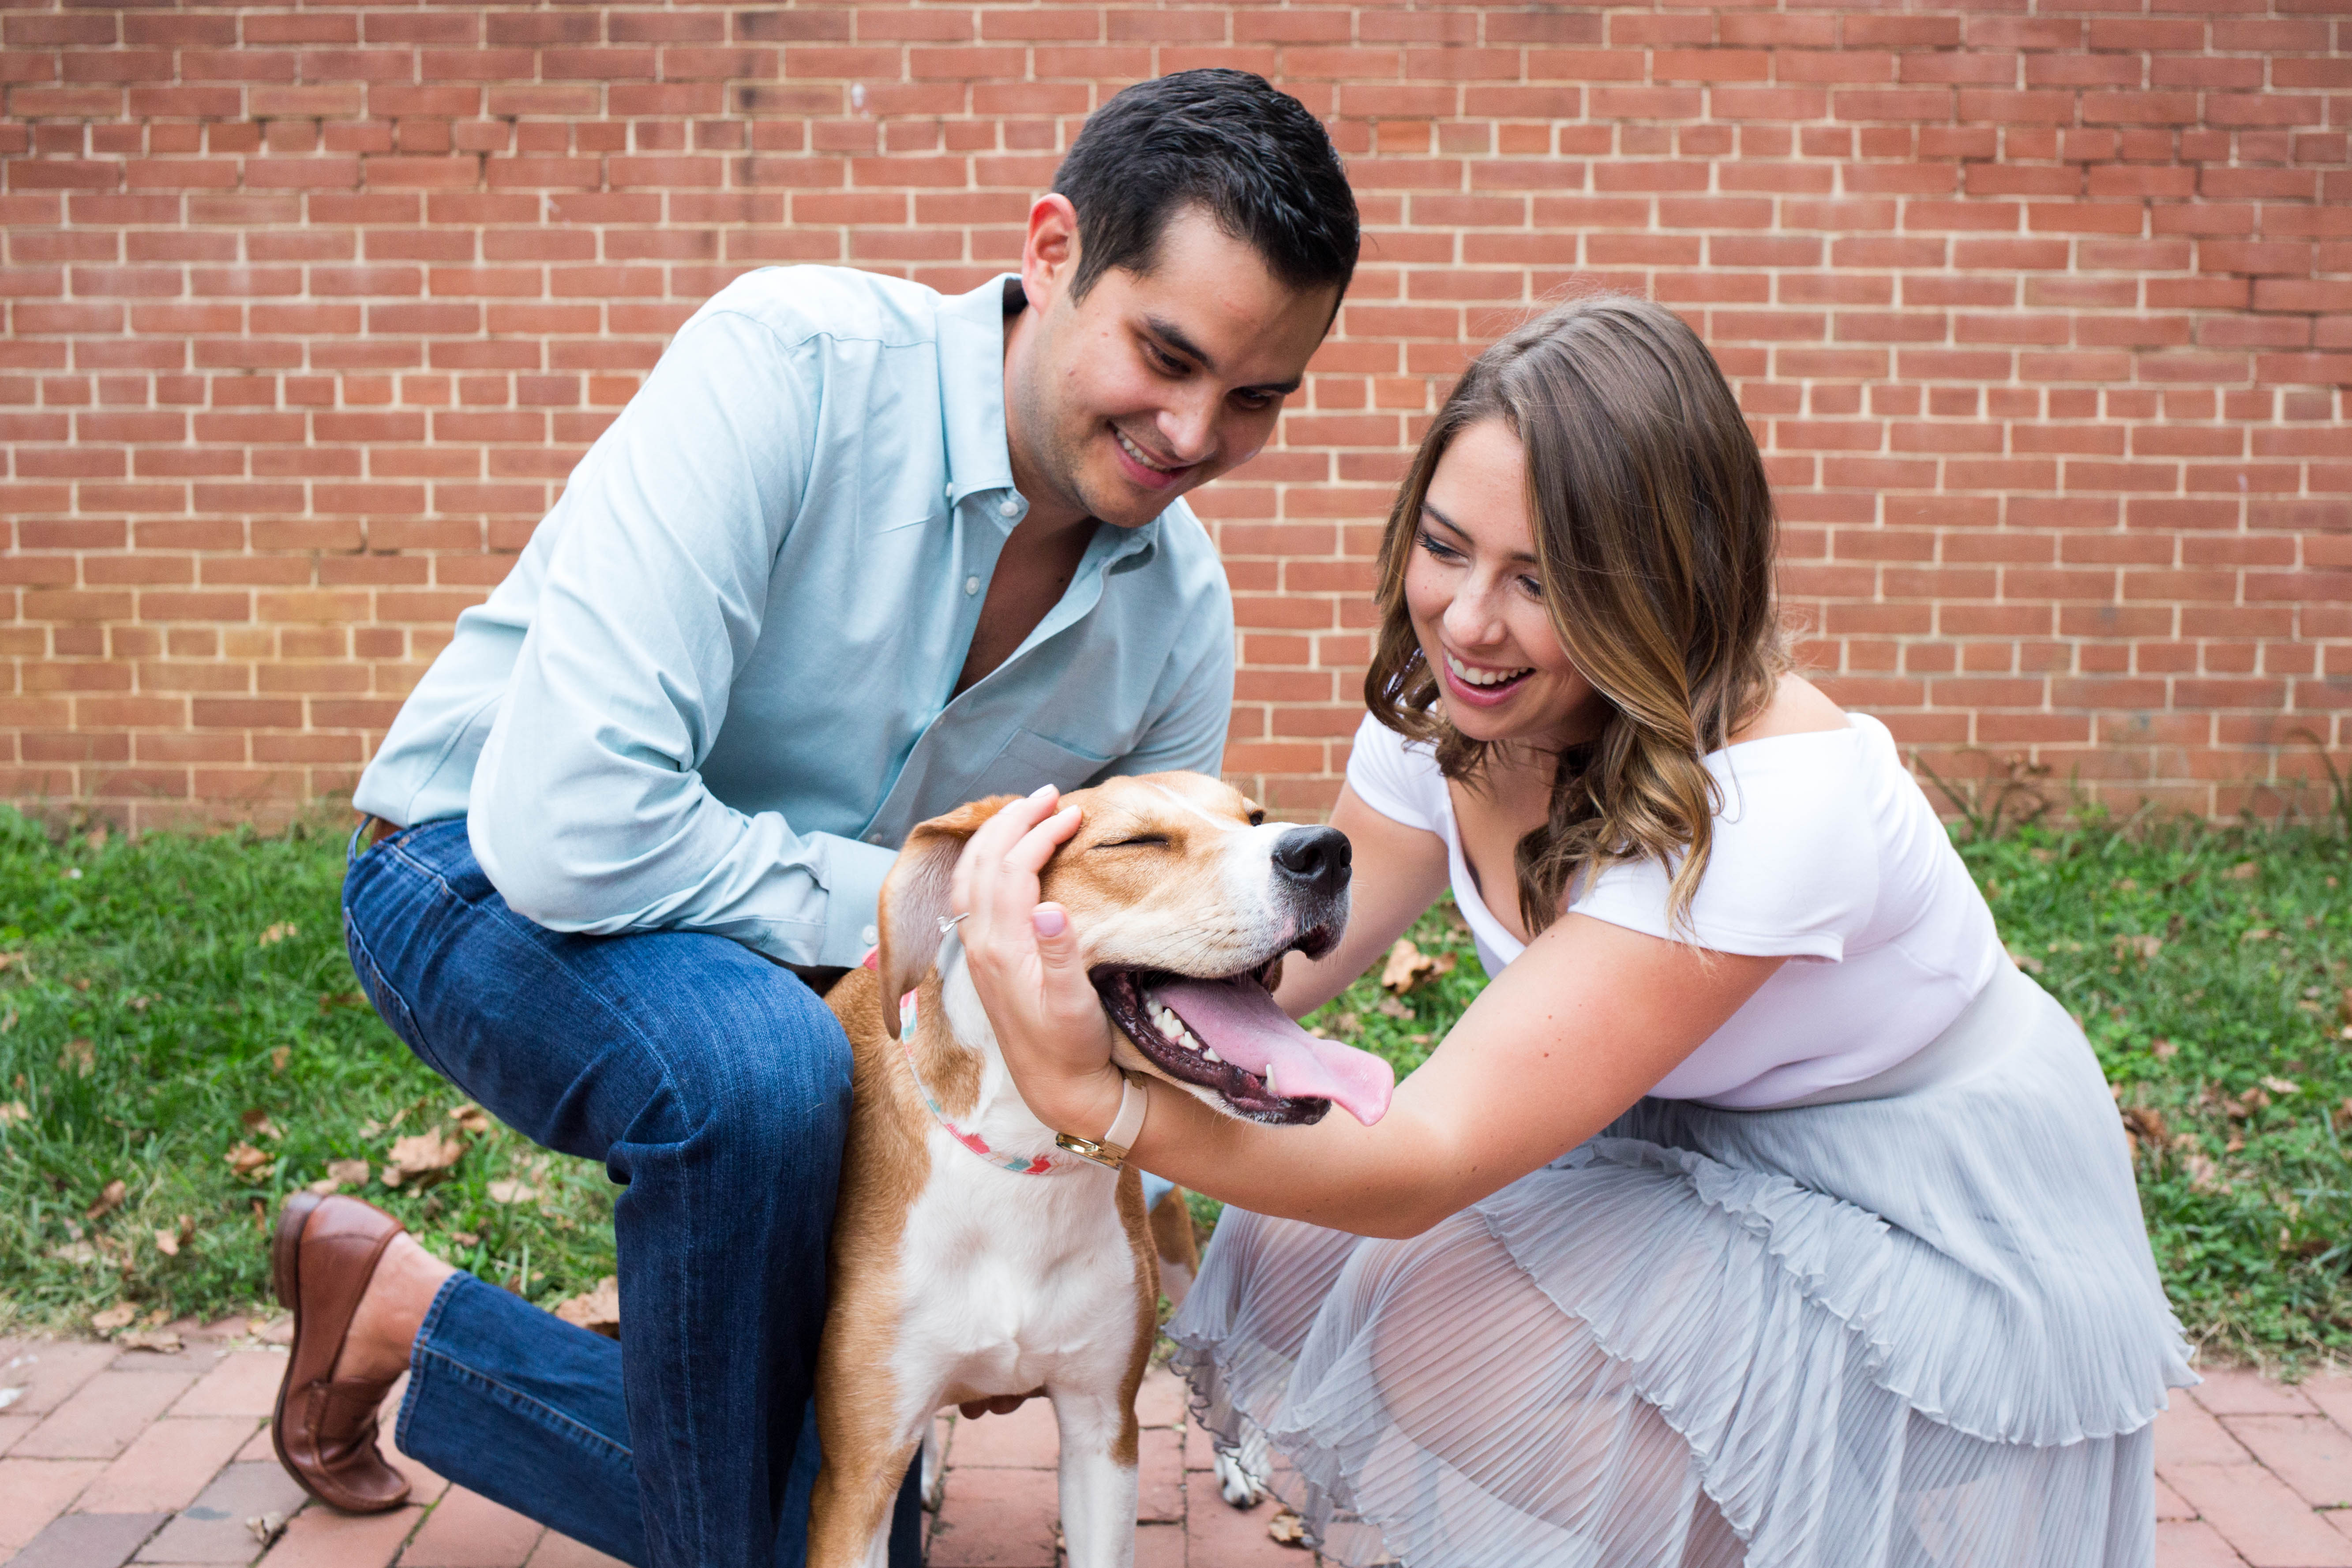 "Meet Penny, a two-year-old Beagle/Hound mix who recently had the honor of participating in mom and dad's engagement photoshoot! Though Penny won't be in attendance at the wedding (don't worry, she's being treated to an all-expenses paid vacation at Dogtopia that week), her parents still wanted her prominently featured in their engagement photos as ""she is family."" In fact, Penny was a gift from her dad to her mom on New Years Day in 2016; she was adopted from Homeward Trails in Fairfax Station. Penny loves peanut butter, going to the dog park { }and watching The Bachelor with her mom and dad, but she is not a big fan of the Roomba. Her special skills include eating whatever she pleases and maintaining an awesome figure -- we're jealous Penny! If you or someone you know has a pet you'd like featured, email us at dcrefined@gmail.com or tag #DCRUFFined and your furbaby could be the next spotlighted! (Image: Amanda Andrade-Rhoades/ DC Refined){ }{ }"